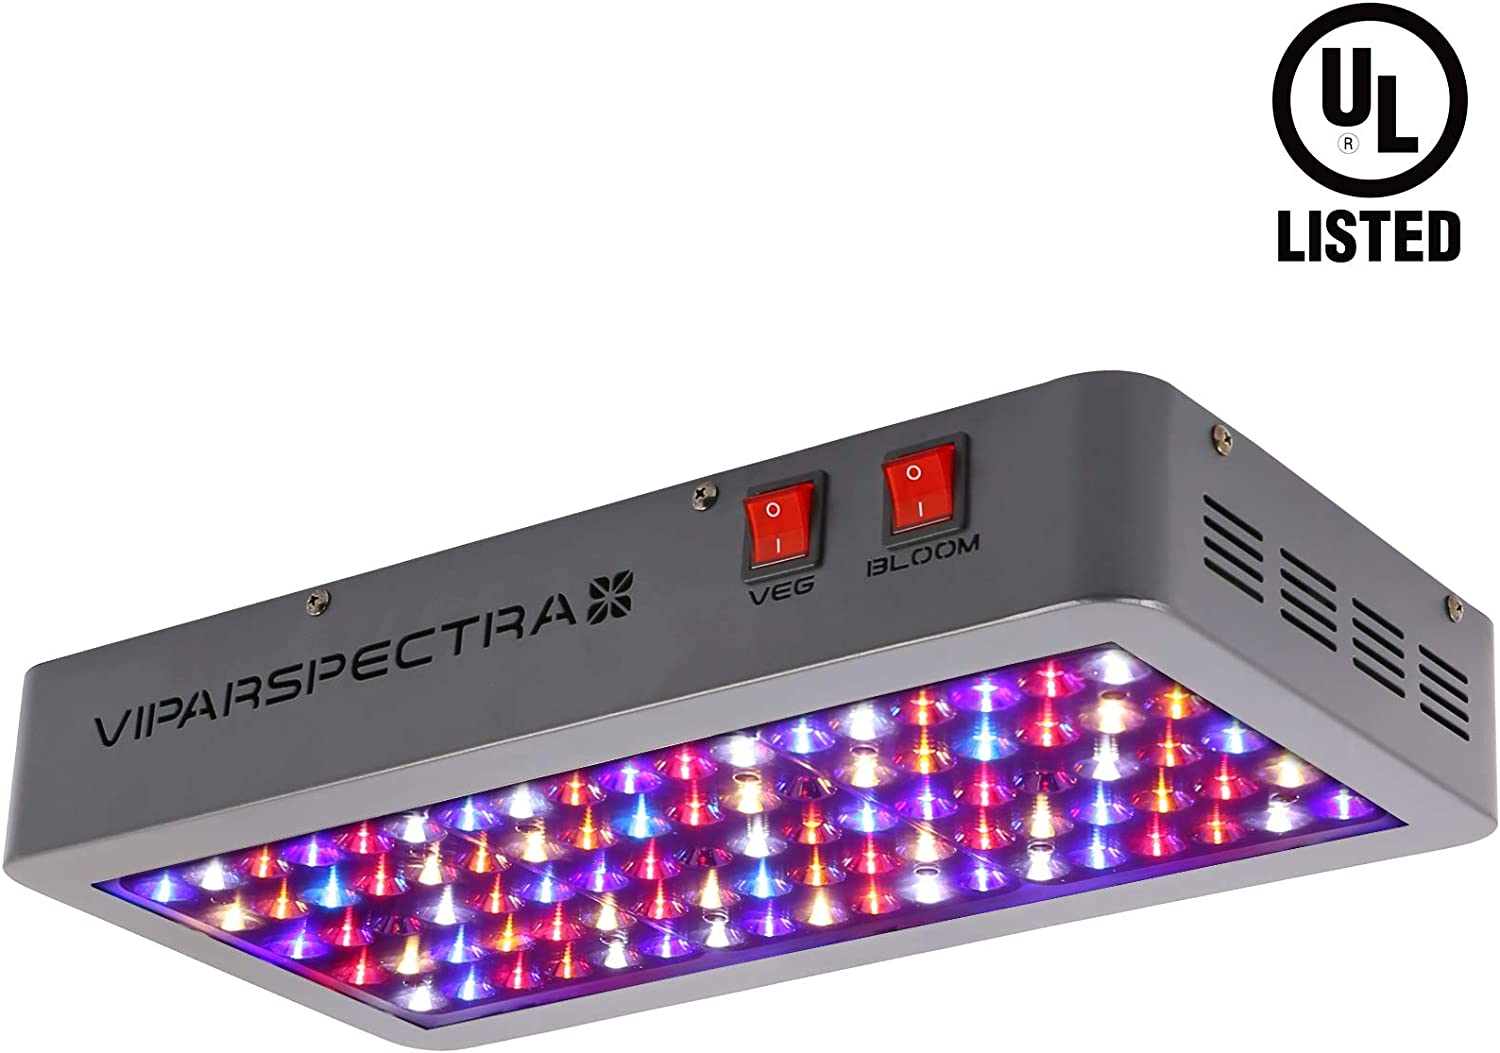 VIPARSPECTRA UL Certified Reflector-Series 450W LED Grow Light Full Spectrum for Indoor Plants Veg and Flower, Has Daisy Chain Function